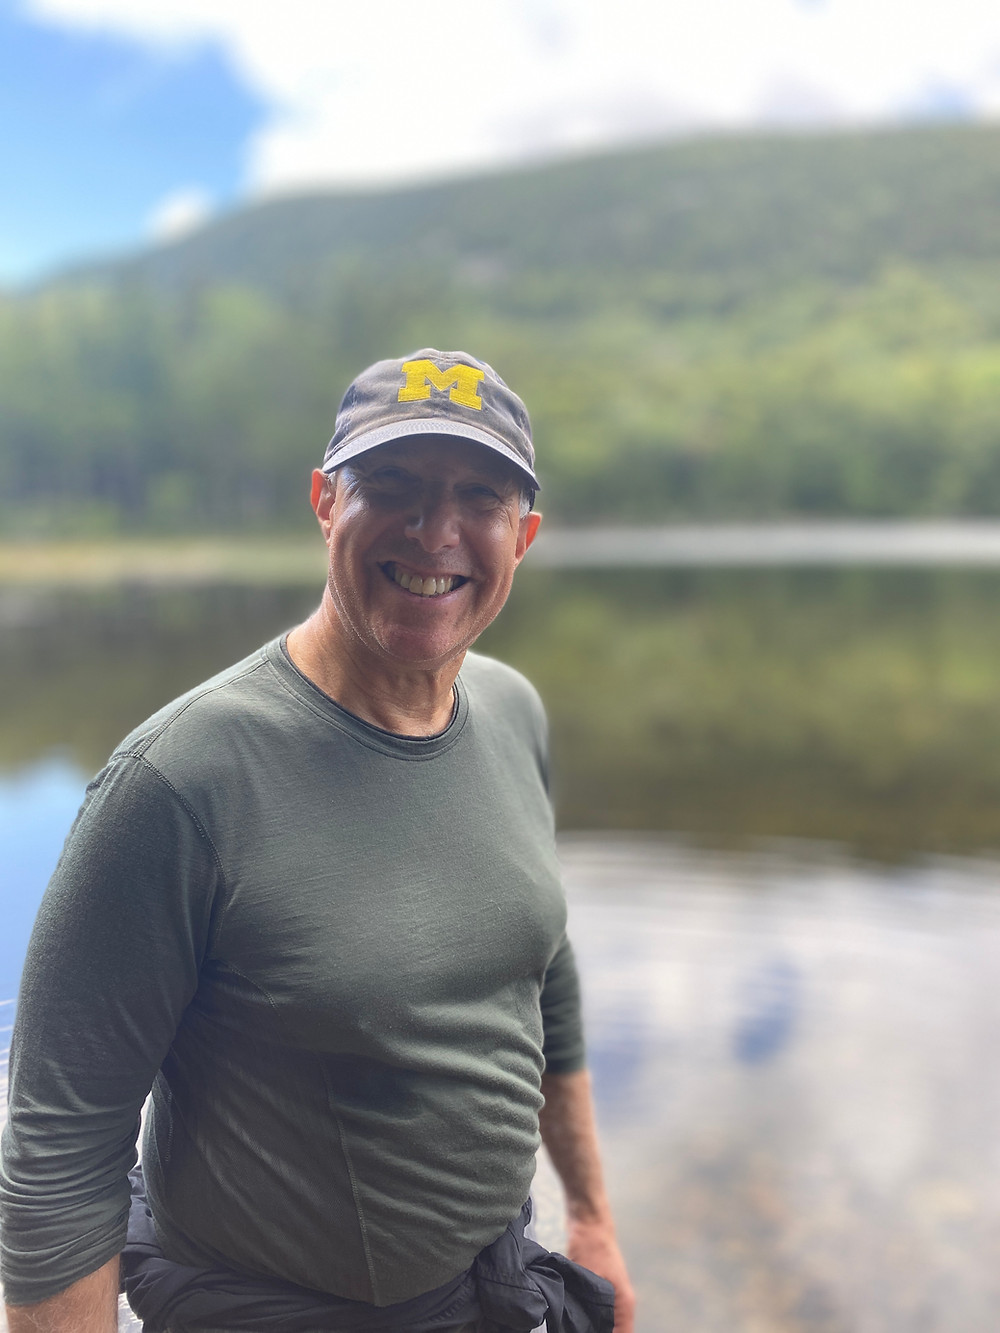 Hiking in Green Mountain National Forest in Vermont in August 2020